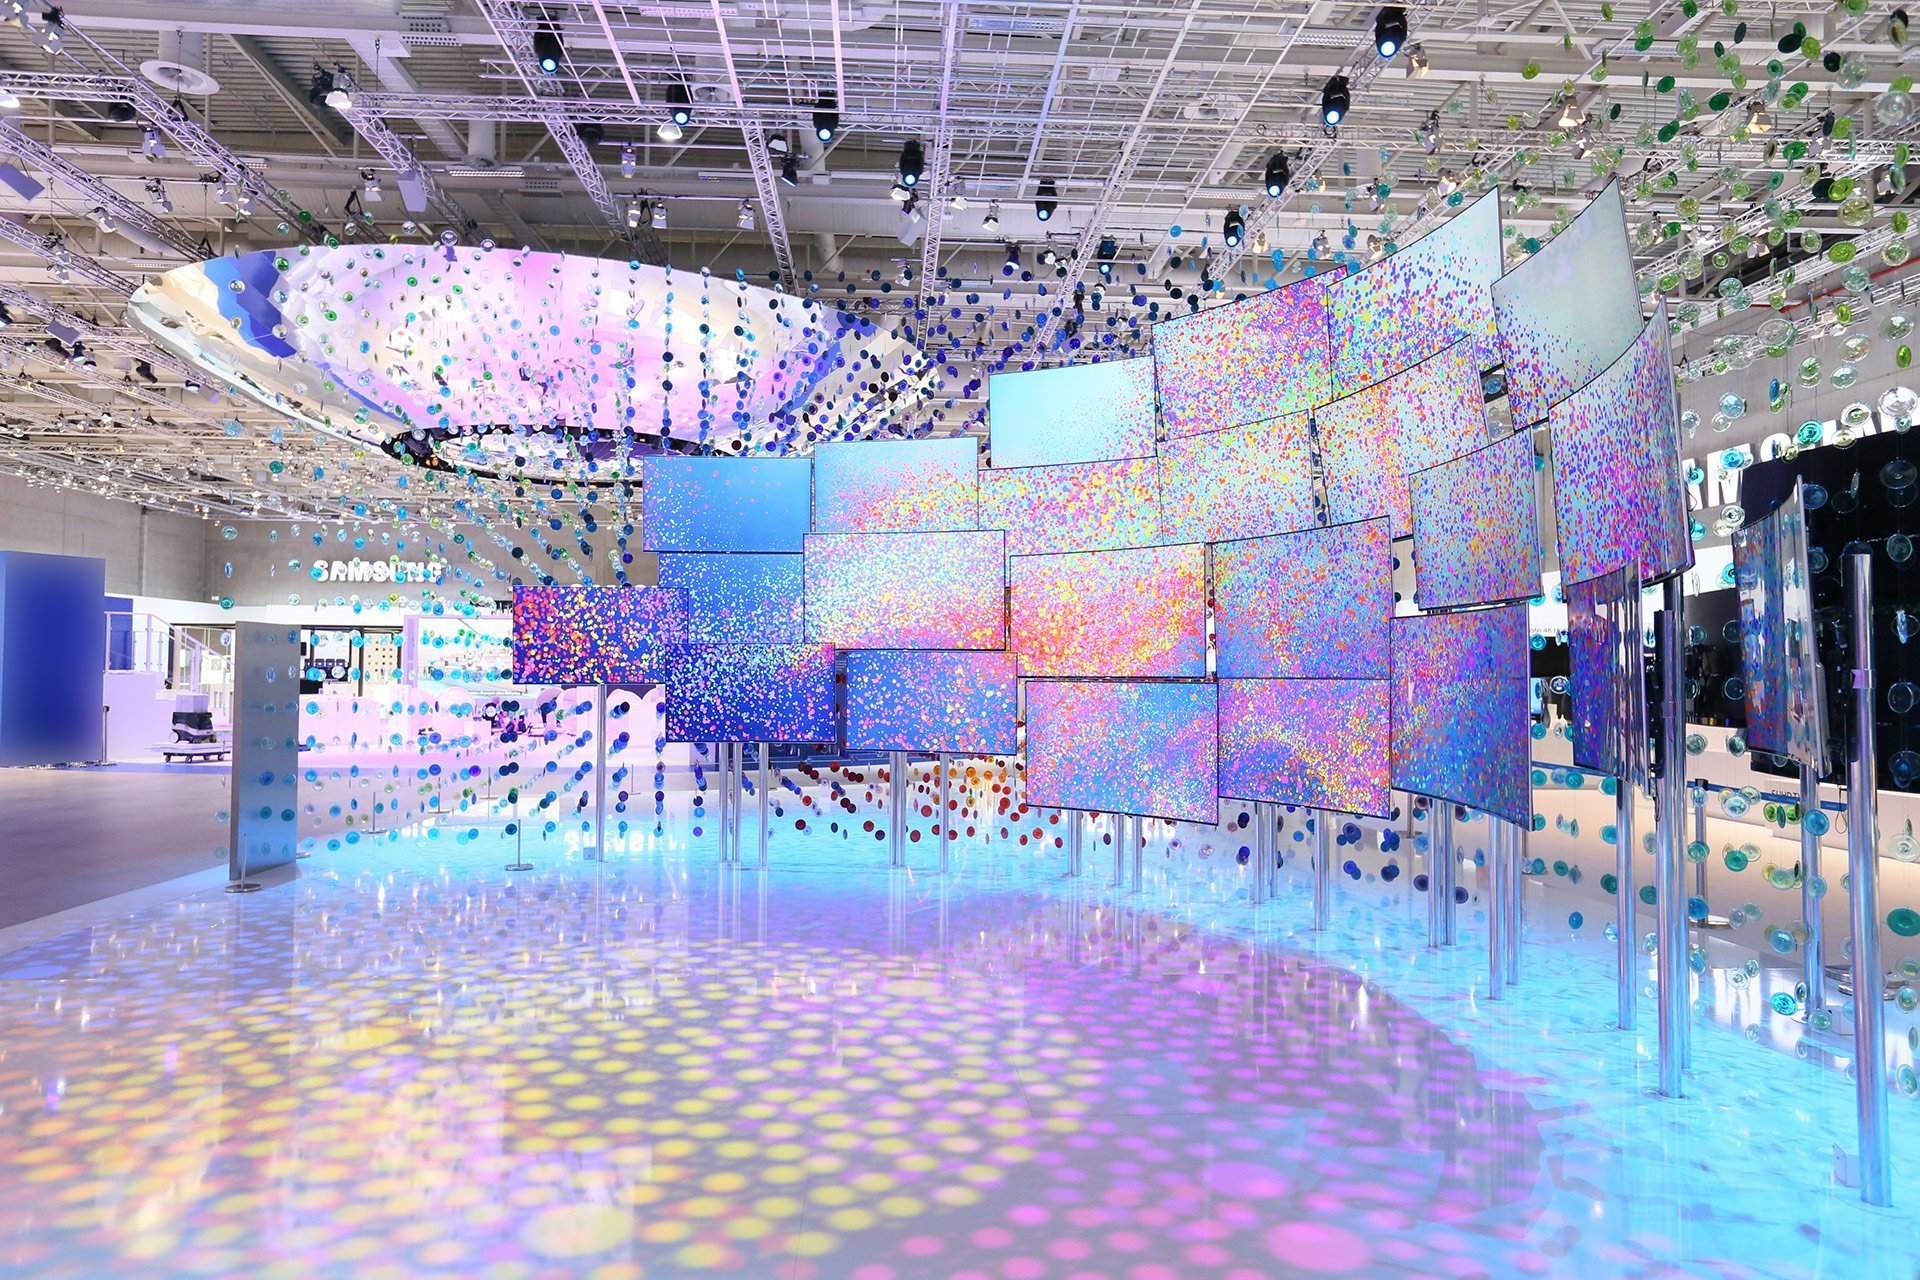 Led screen architectural display